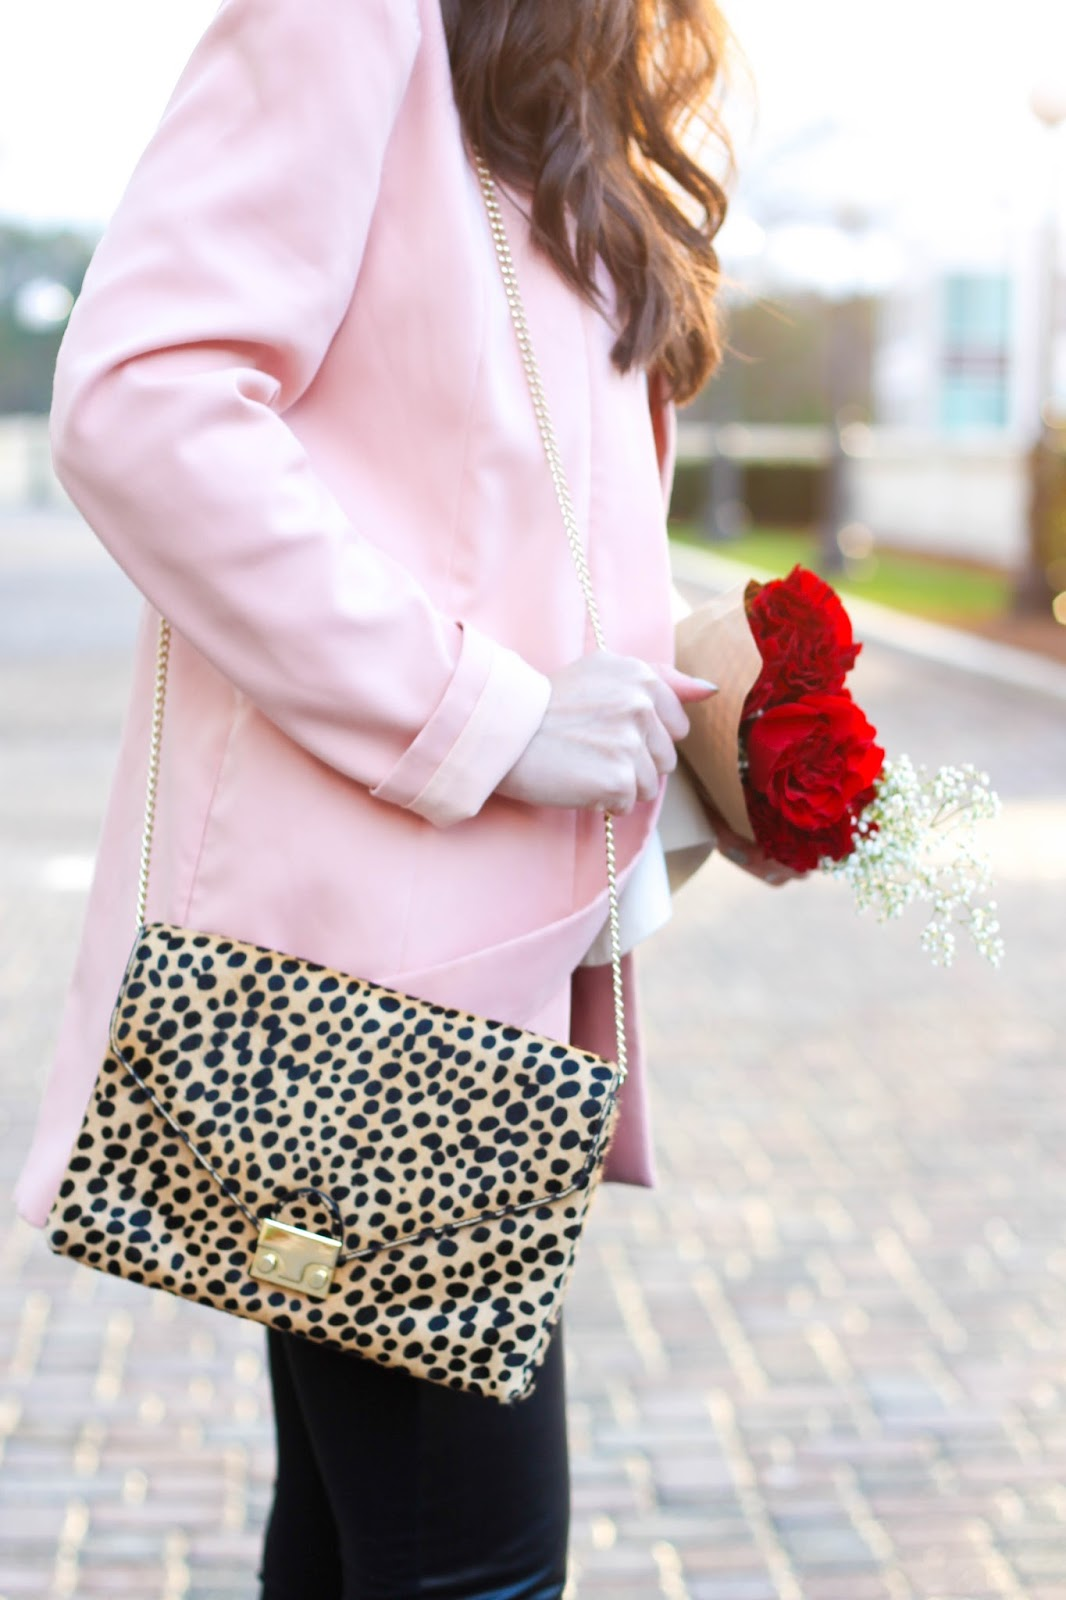 Rent the Runway clutch, Rent the Runway valentines outfit, Valentine's Day trends, Valentine's Day ideas, Valentine's Day outfit, date night look, pink blazer, faux leather leggings, Nordstrom leggings, leopard clutch, leopard crossbody bag, nude pumps, valentine's date night, pretty in the pines blog, fashion blogger, winter trends, winter fashion, winter outfit idea, Elliatt blush blazer,TY-LR cream rive gauche top,  cheetah printed lock clutch by Loeffler Randall